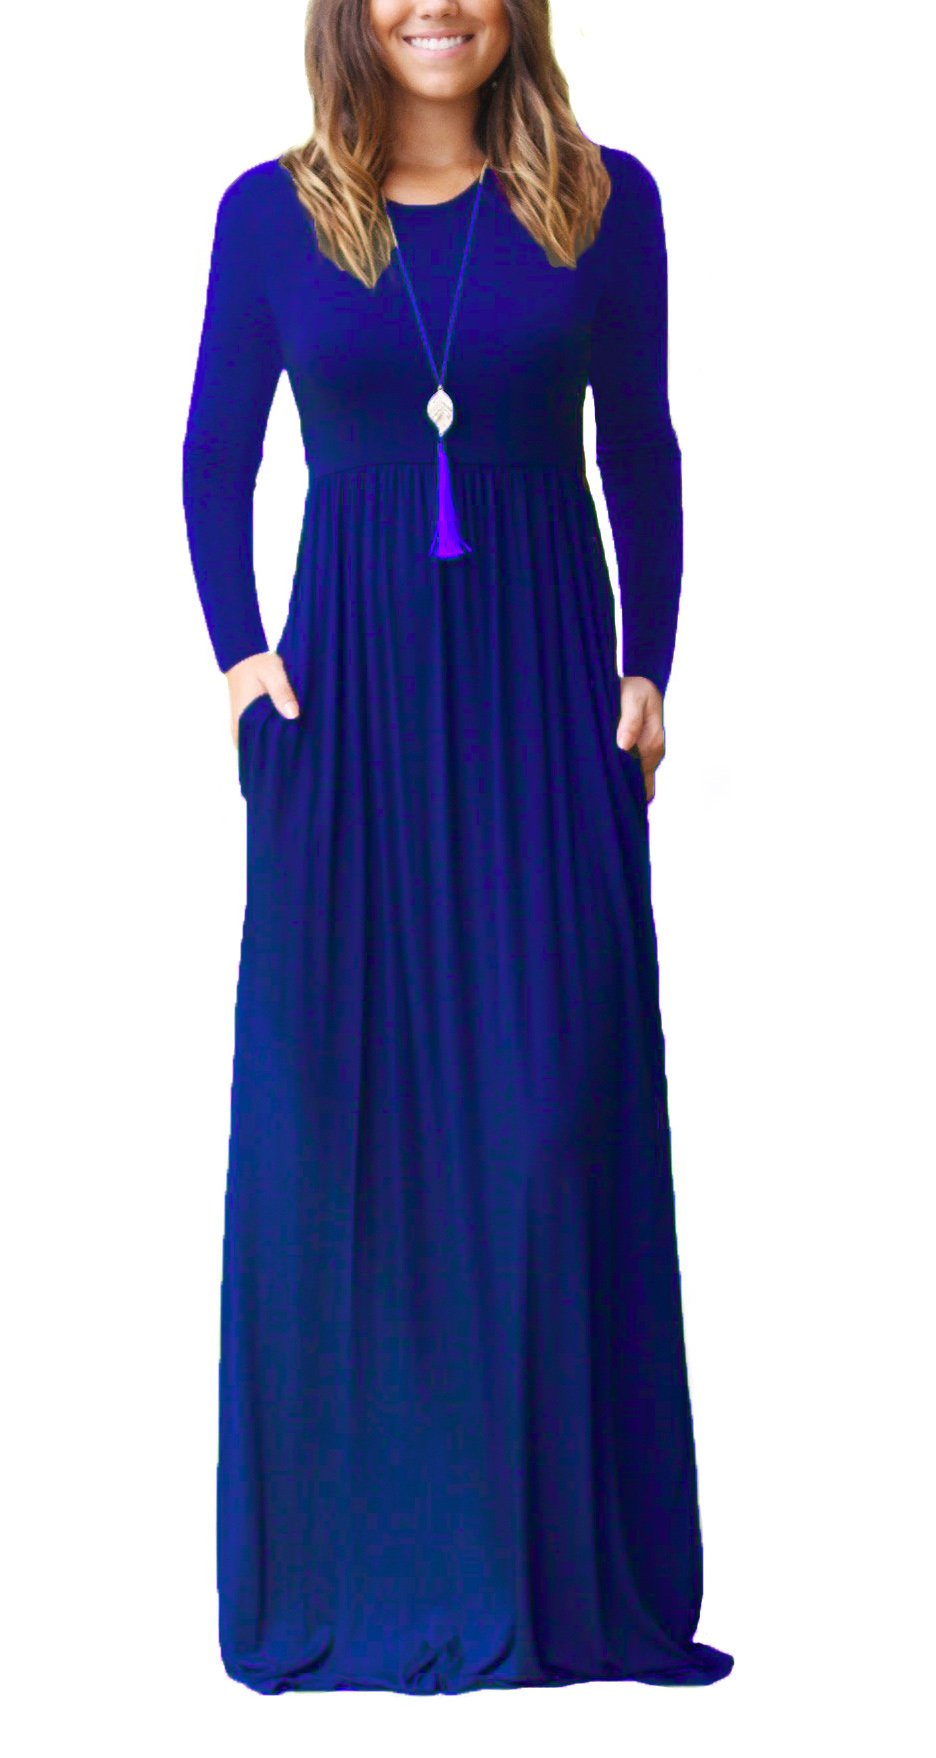 ae72790237d Galleon - DEARCASE Women s Round Neck Long Sleeves A-line Casual Dress With  Pocket Dark Blue Small